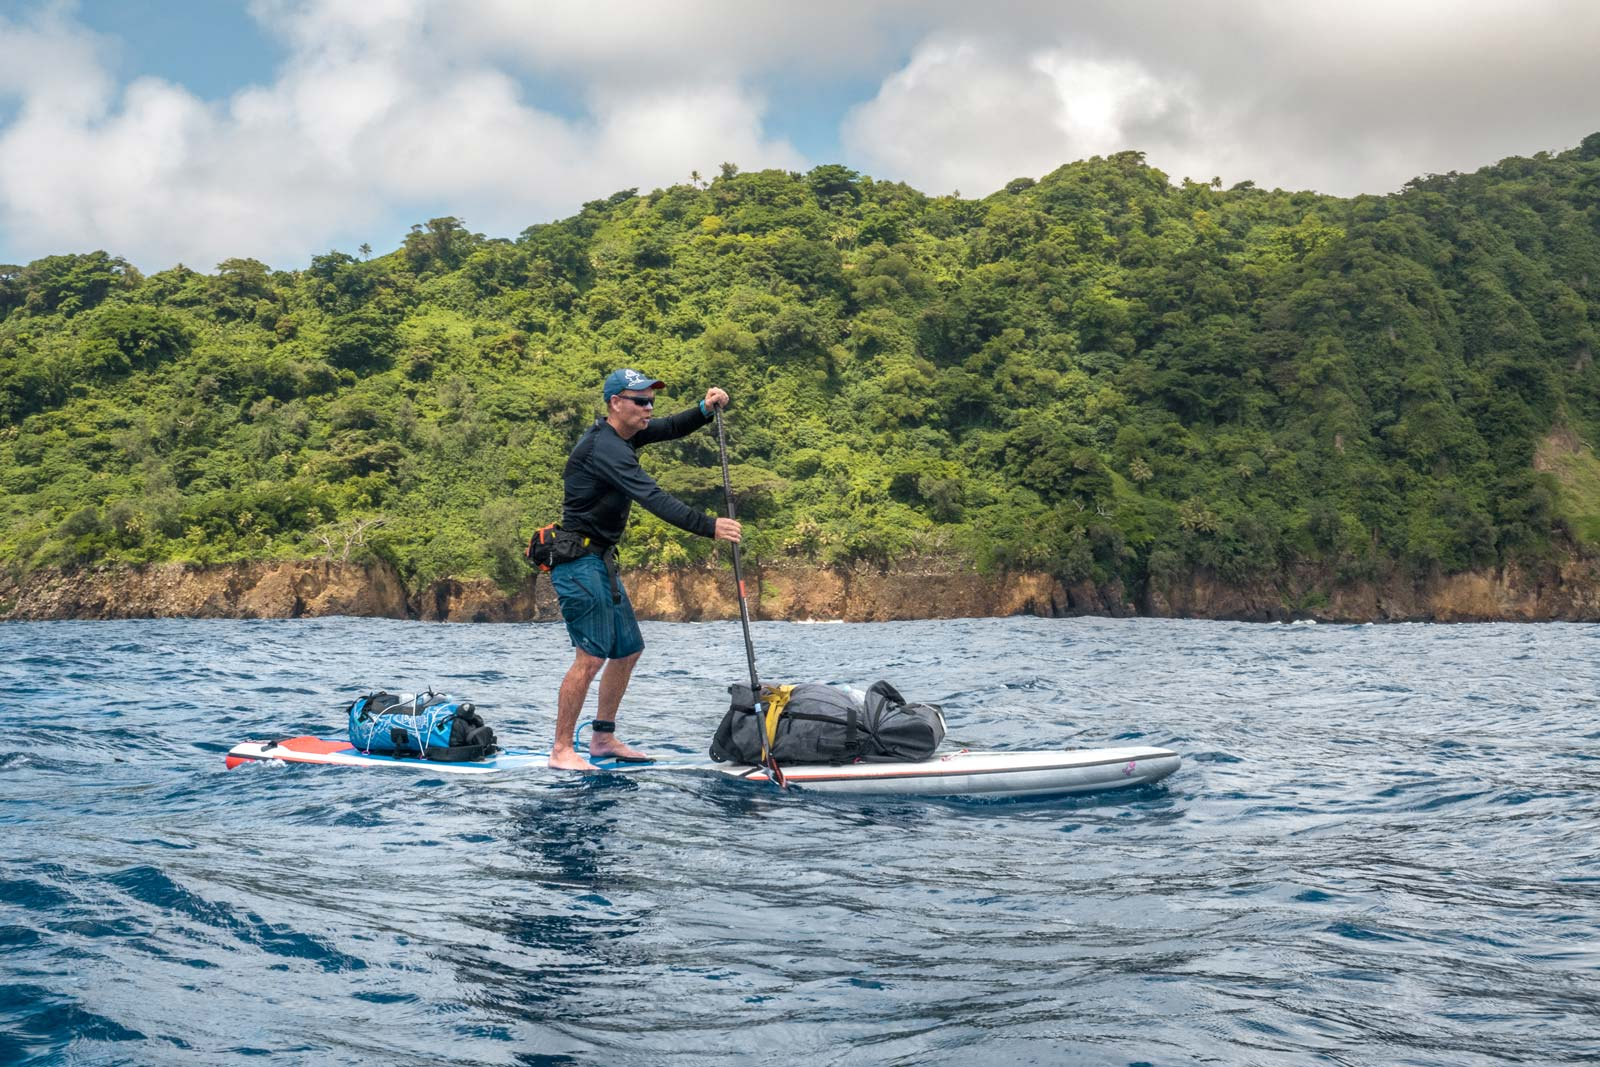 Starboard-SUP-Bart-de-Zwart-Trevor-Tunnington-Explore-the-Islands-of-Vanuatu-by-Stand-Up-Paddleboard-14-inflatable-touring